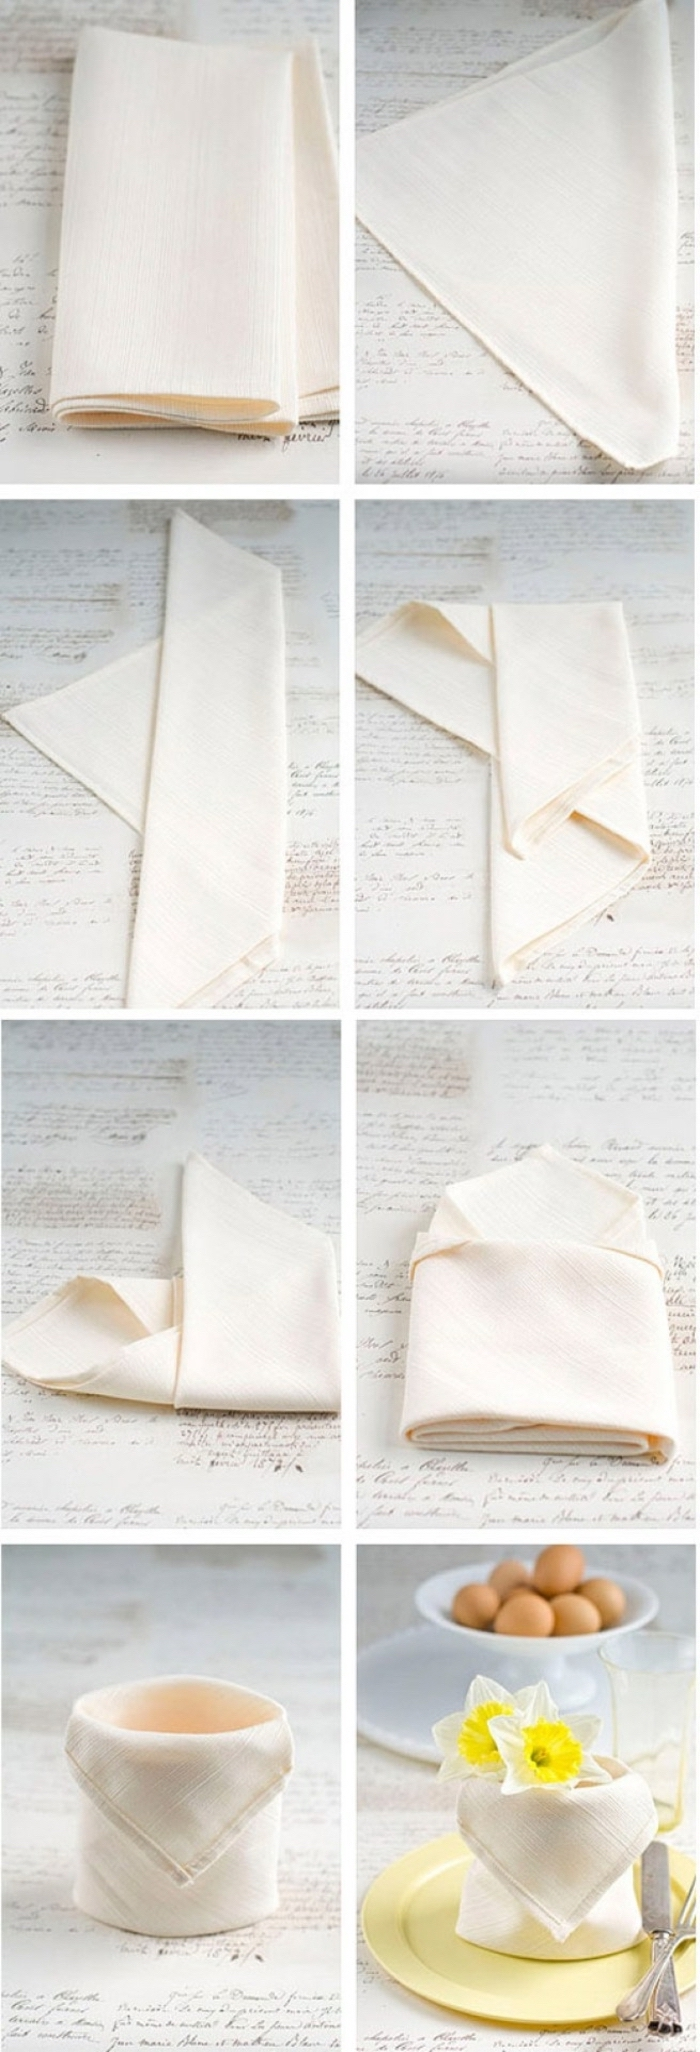 how to fold napkins with rings, white napkin, cup shaped, yellow flower inside, diy tutorial, step by step